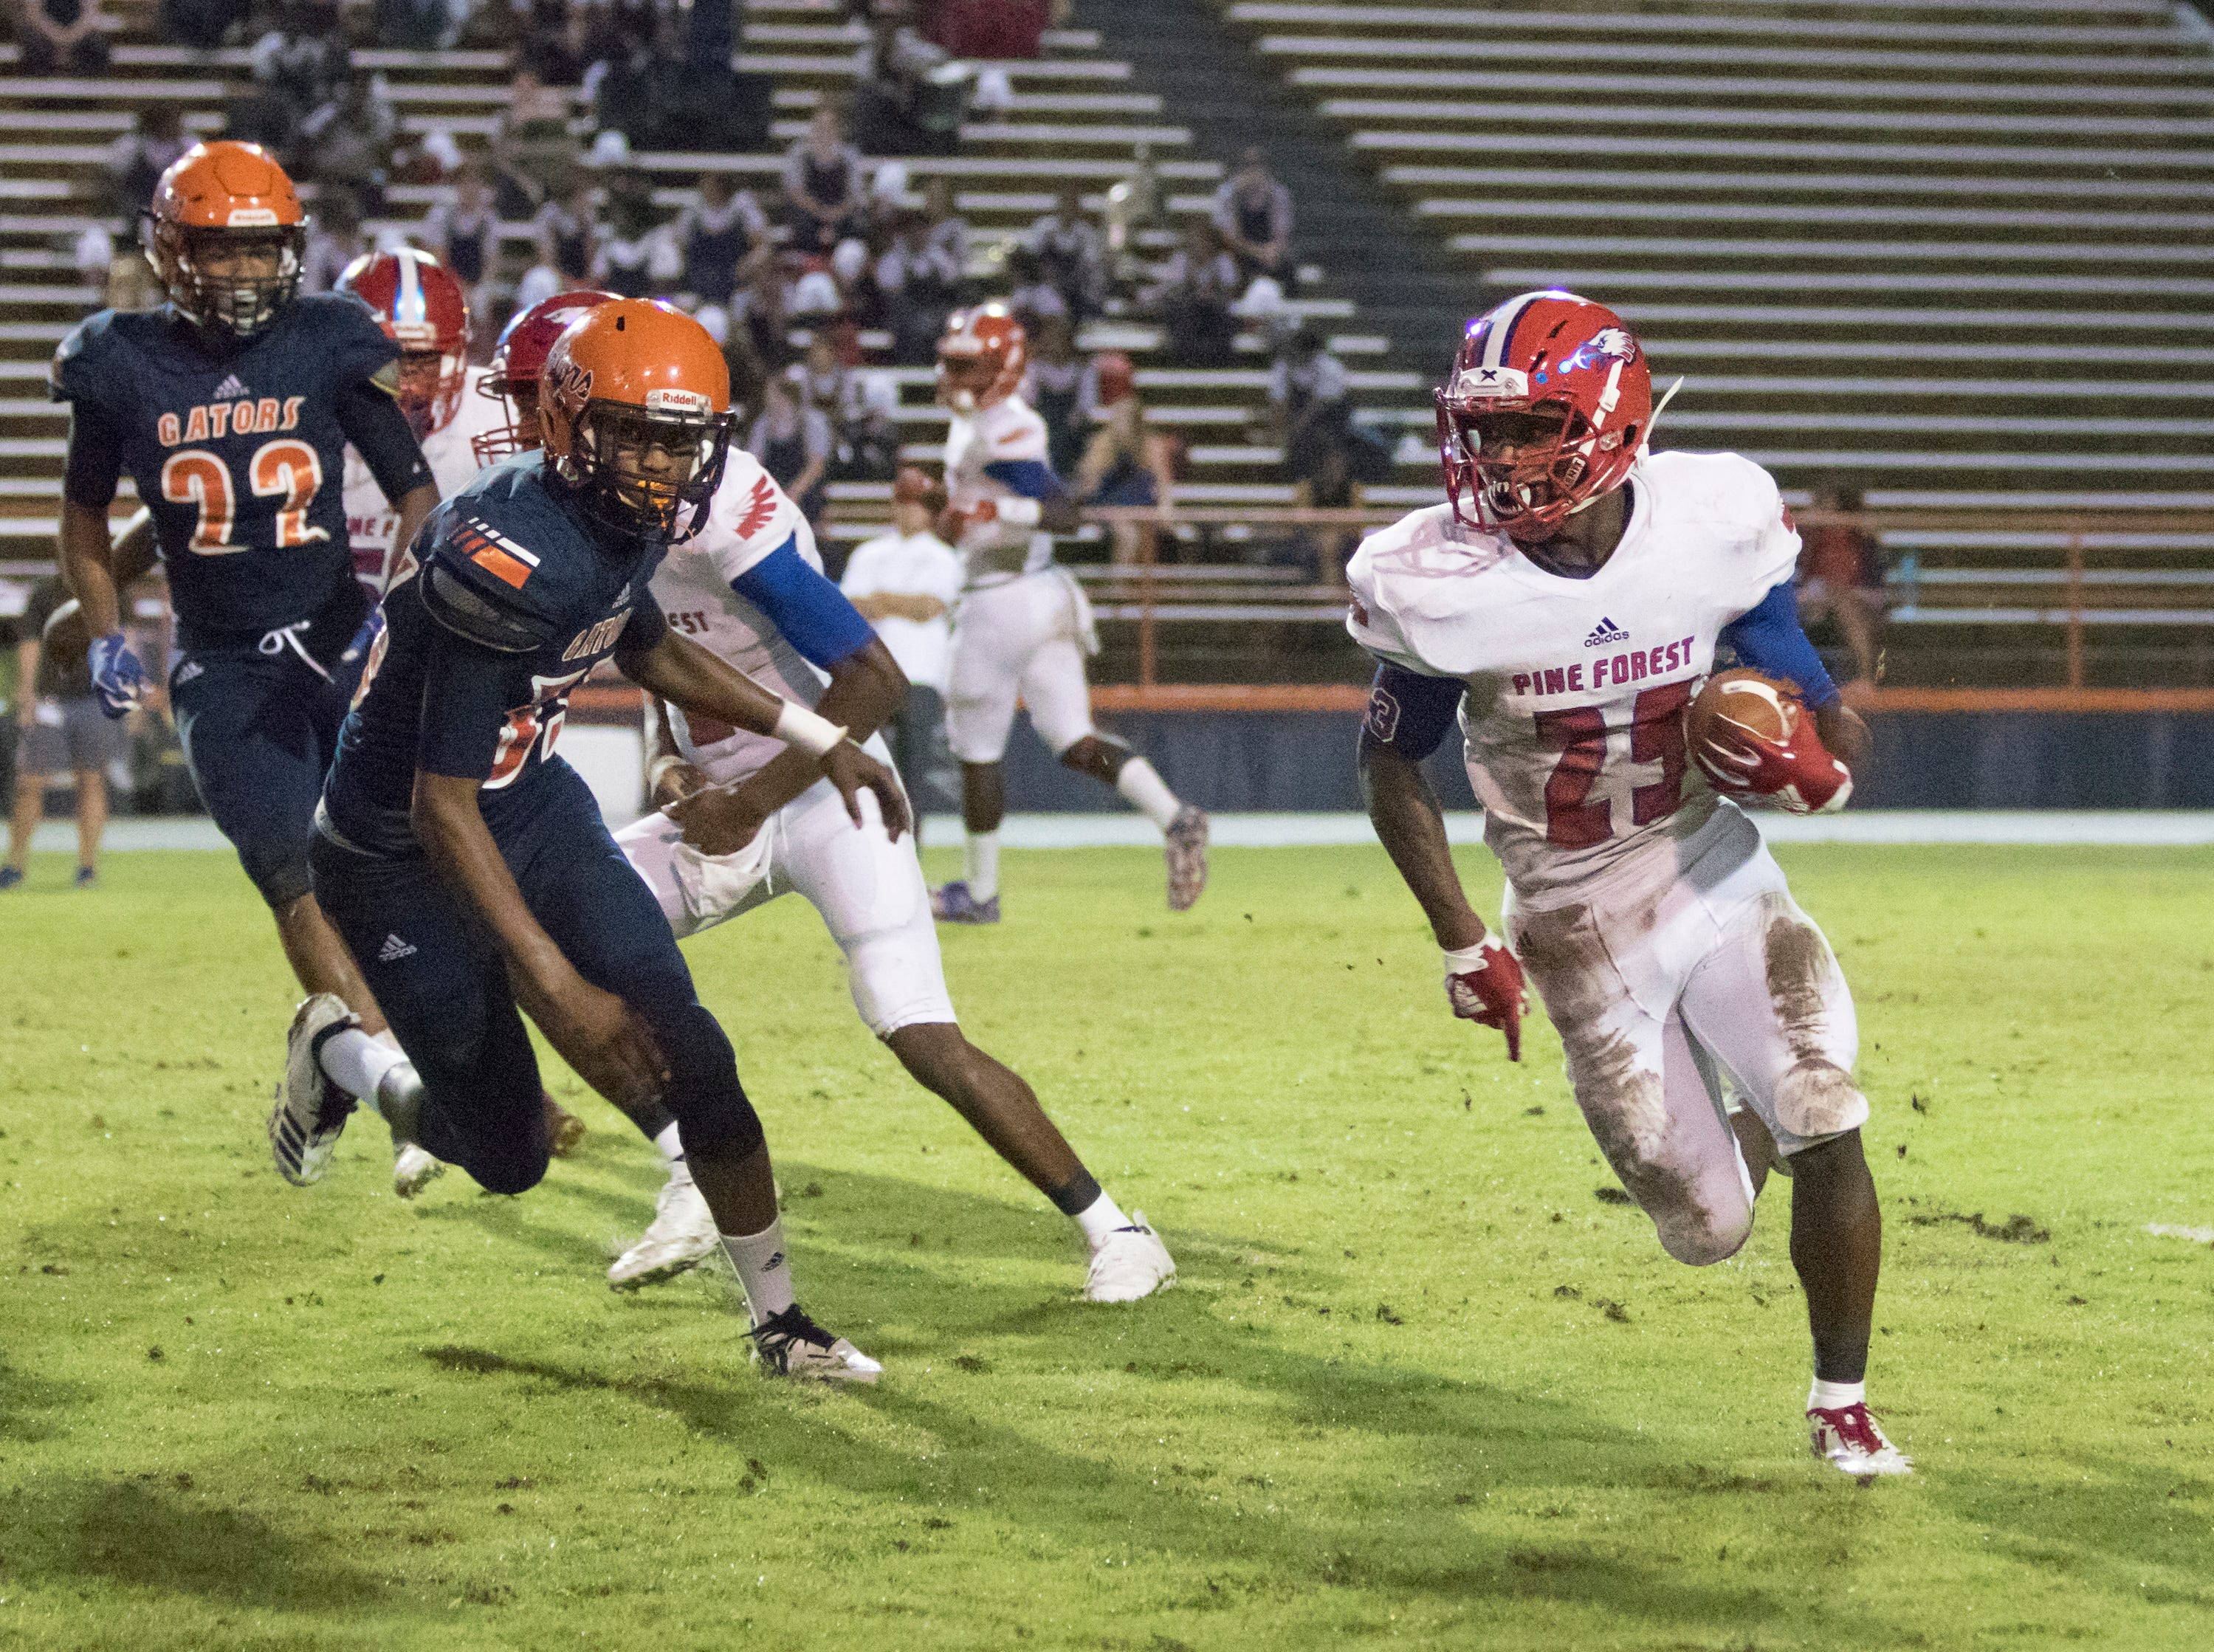 Anwar Lewis (25) carries the ball during the Pine Forest vs Escambia football game at Escambia High School in Pensacola on Friday, September 28, 2018.